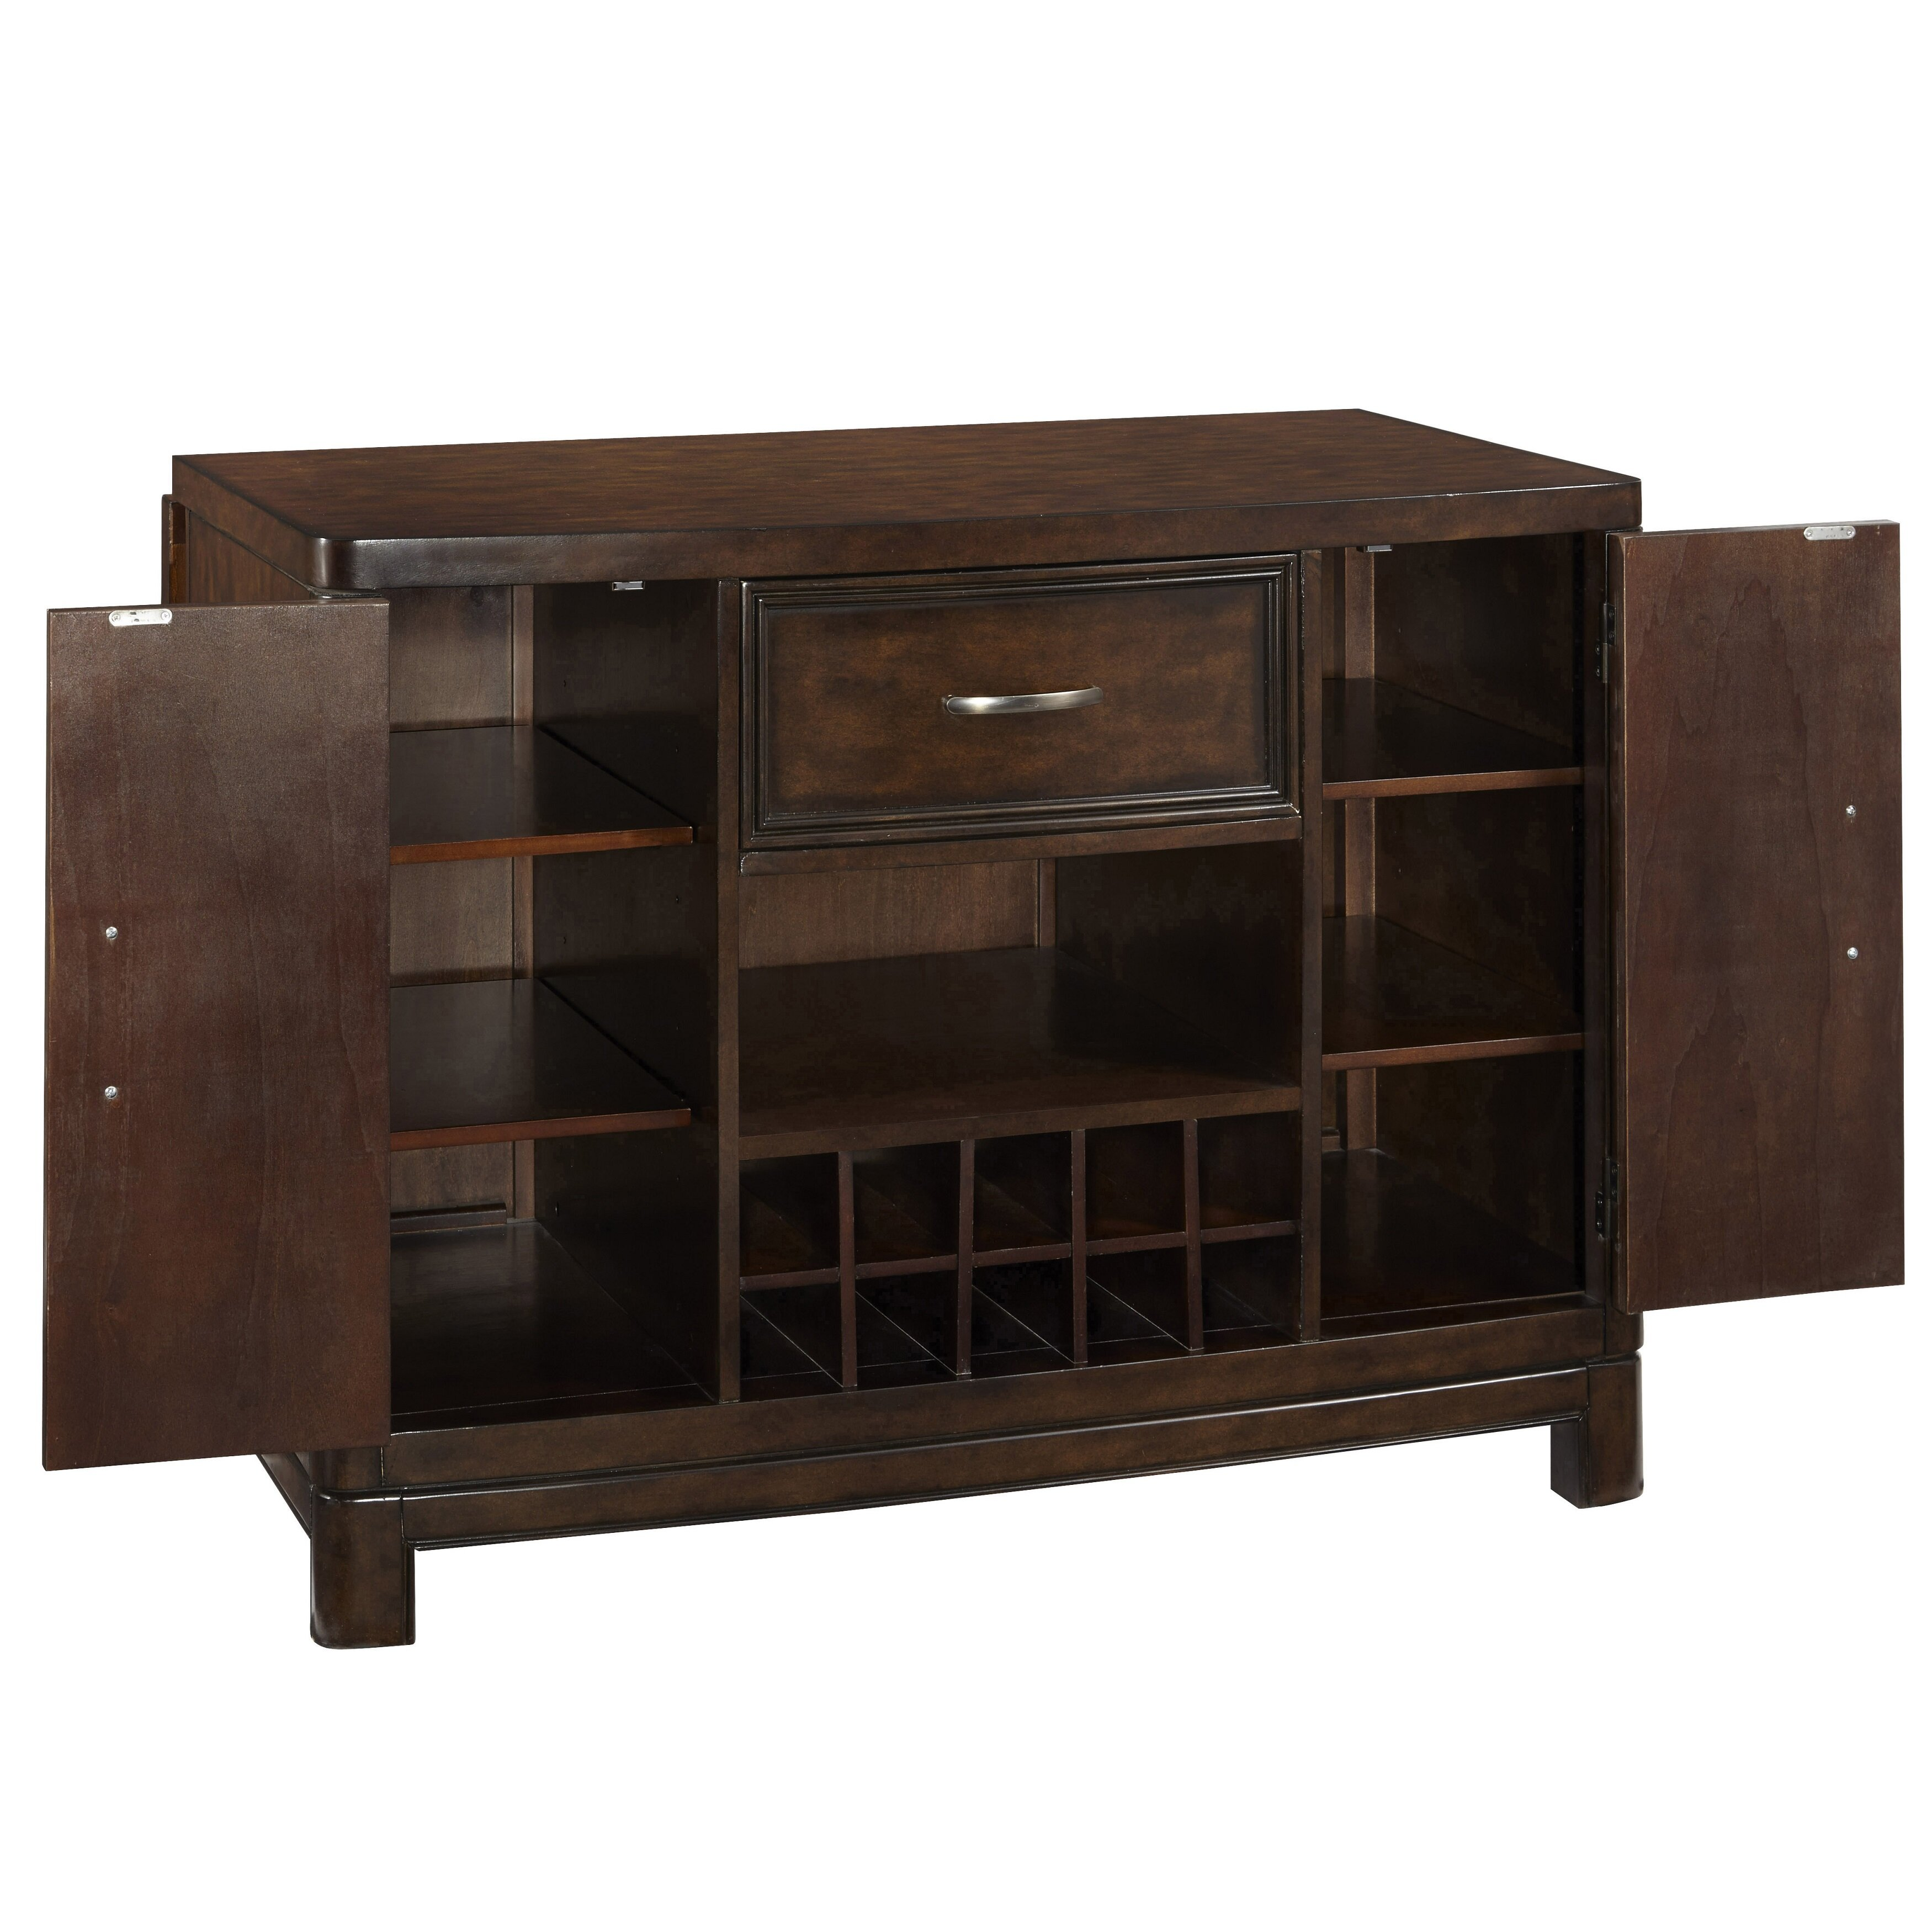 home styles crescent hill kitchen island amp reviews wayfair home styles grand torino kitchen island 5012 94x